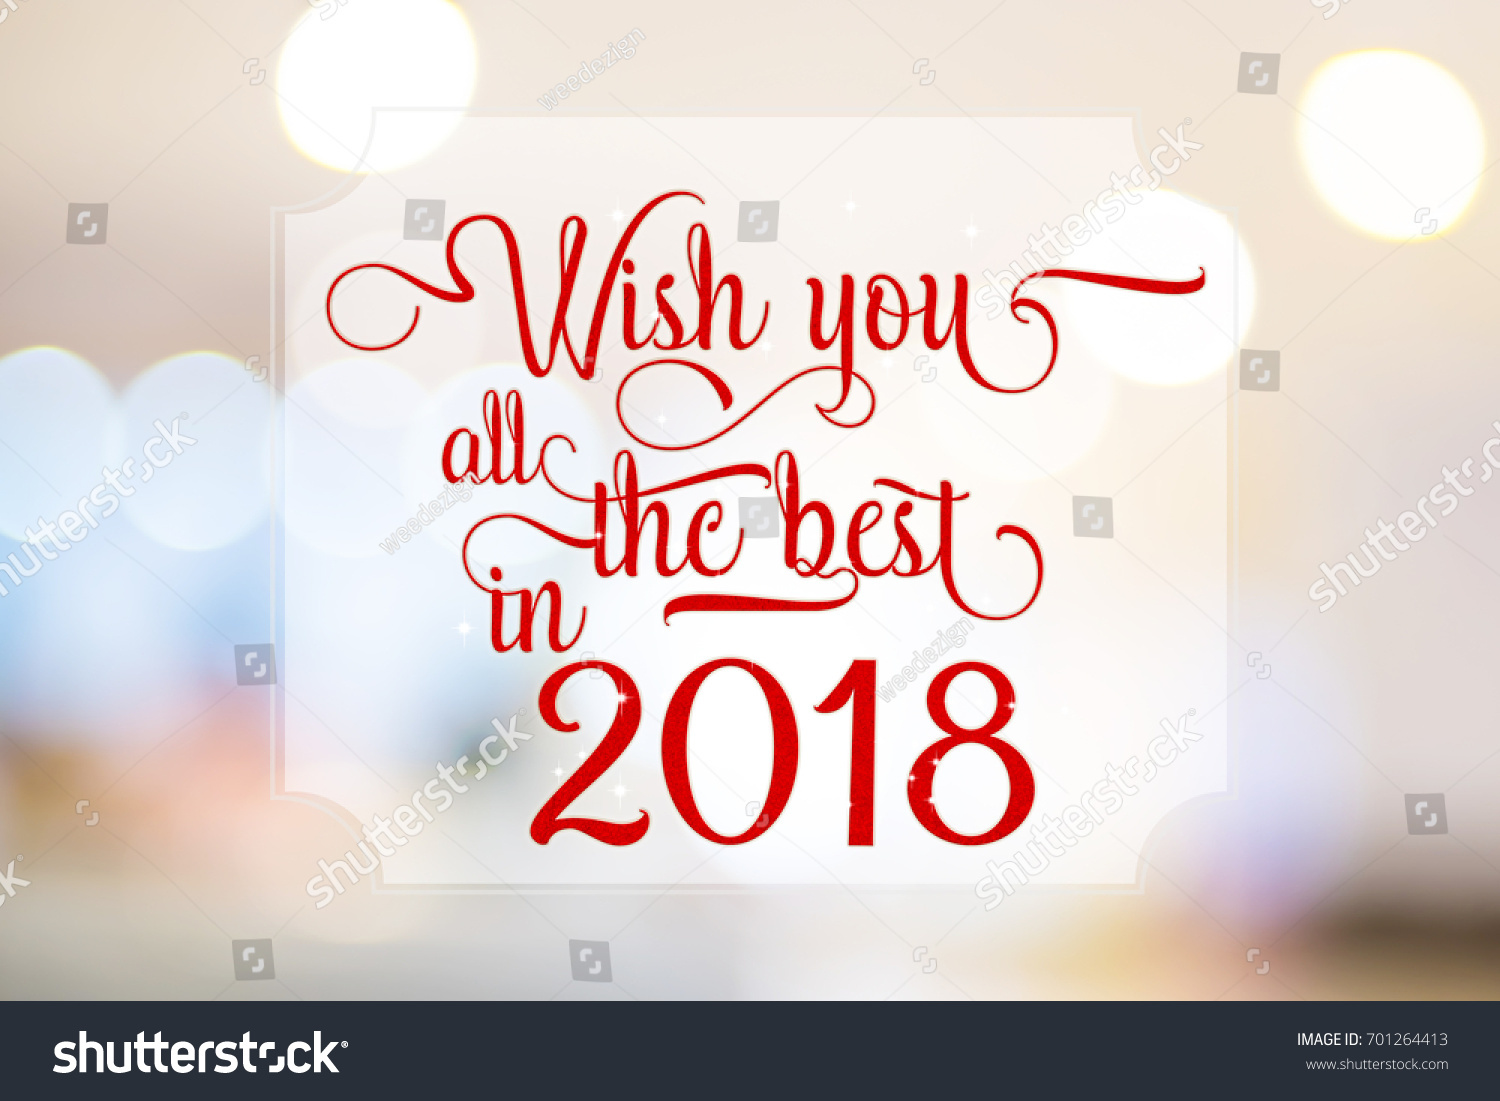 All the best greeting cards choice image greeting card examples wish you all best 2018 red stock illustration 701264413 shutterstock wish you all the best in voltagebd Images